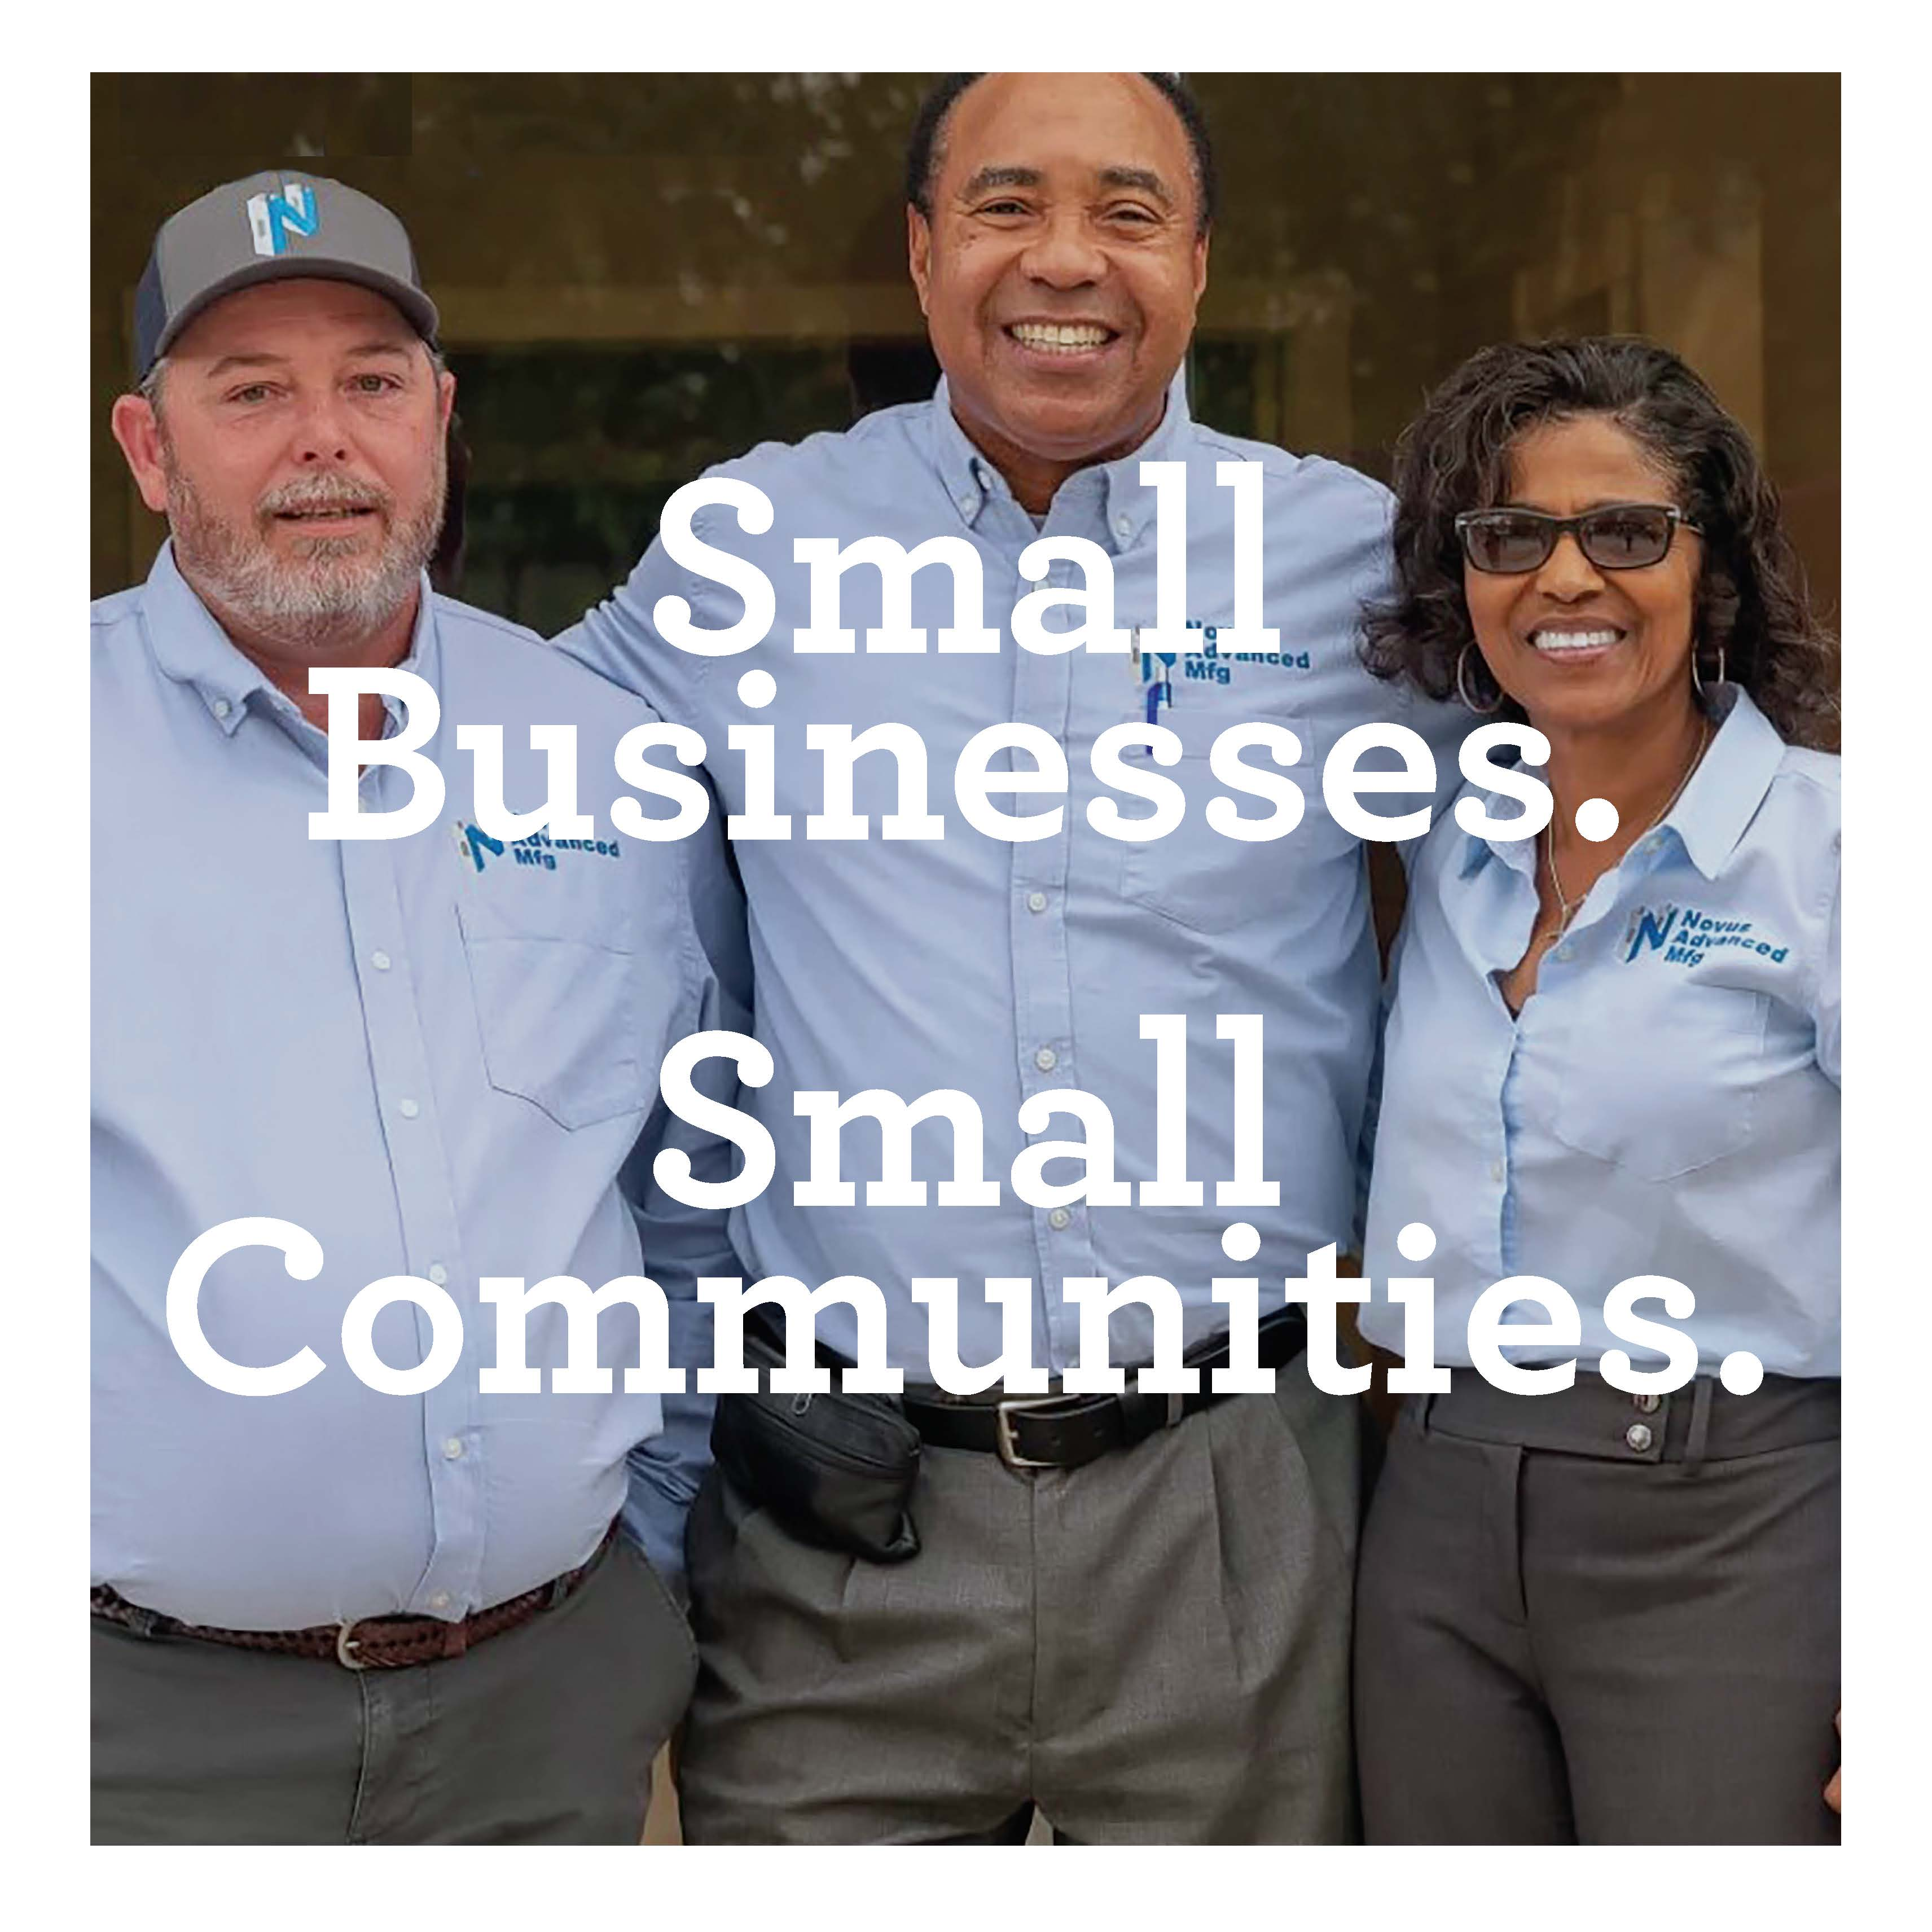 small businesses, small communities